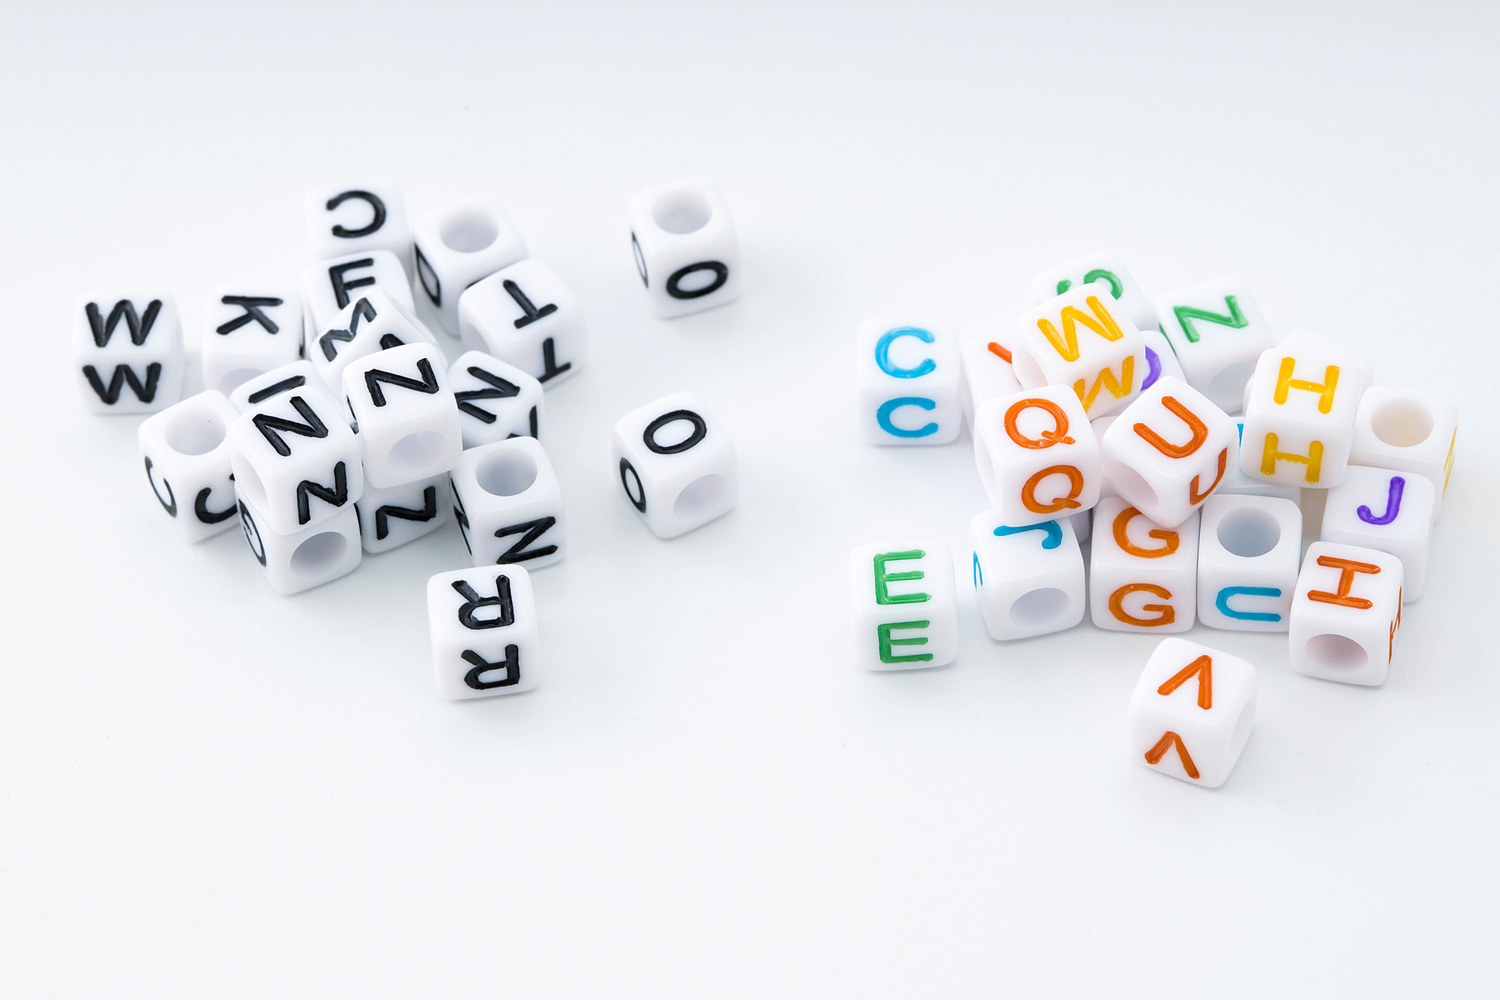 [V7-VC3] Acrylic letter beads (Cube), Acrylic, Plastic letter charm, Unique charm, Random mixed letters 50g (approx. 350 pcs)(V7-G3,V7-G3C)